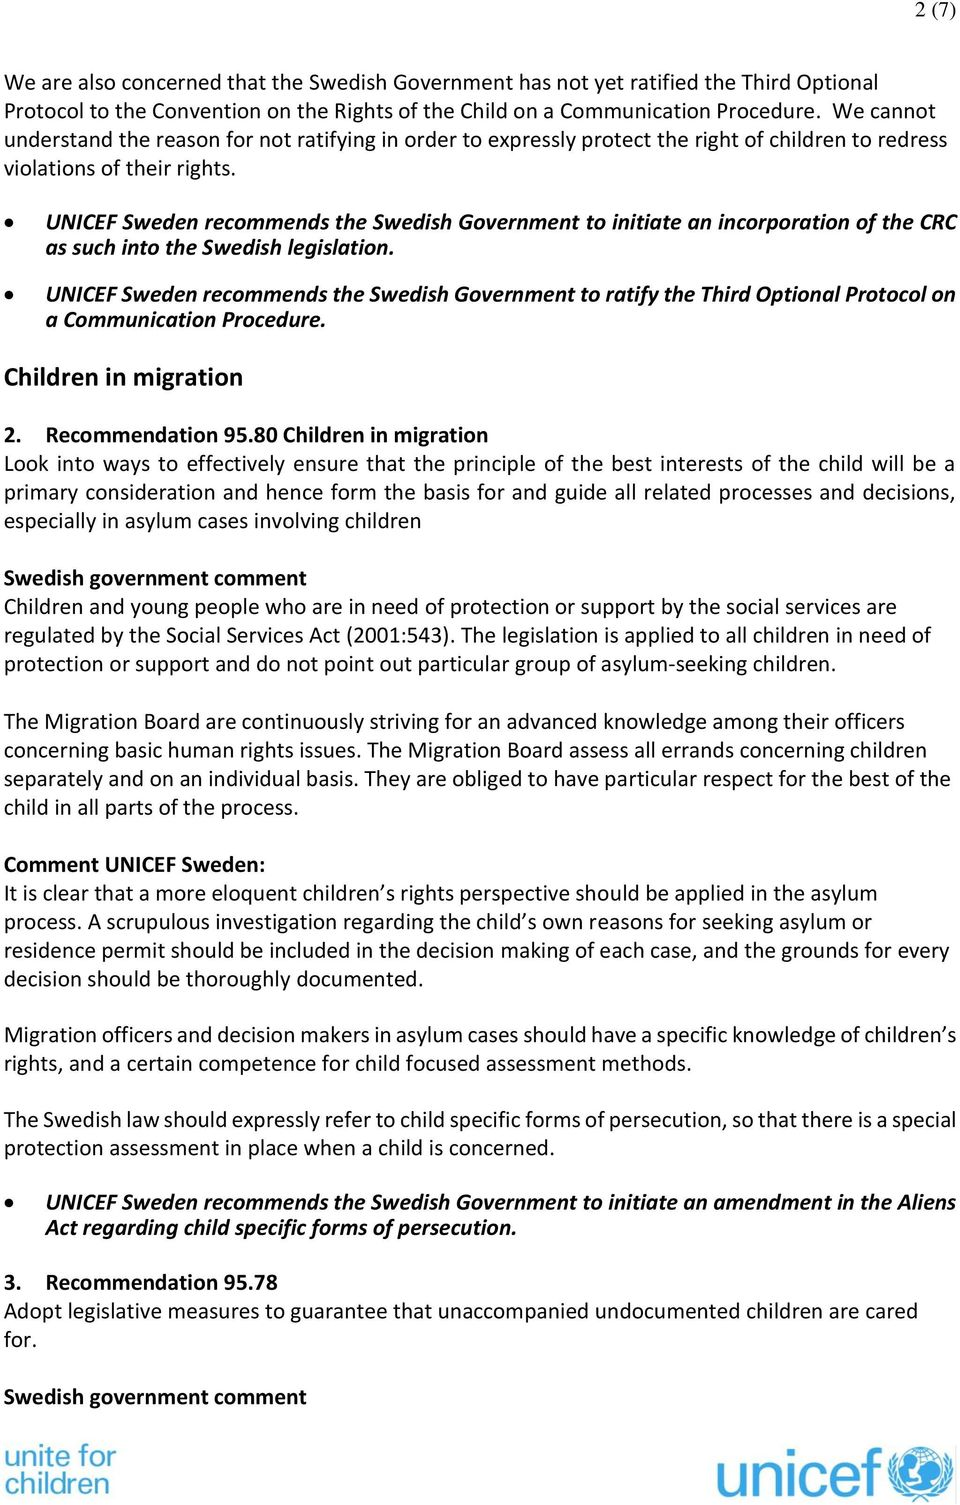 UNICEF Sweden recommends the Swedish Government to initiate an incorporation of the CRC as such into the Swedish legislation.